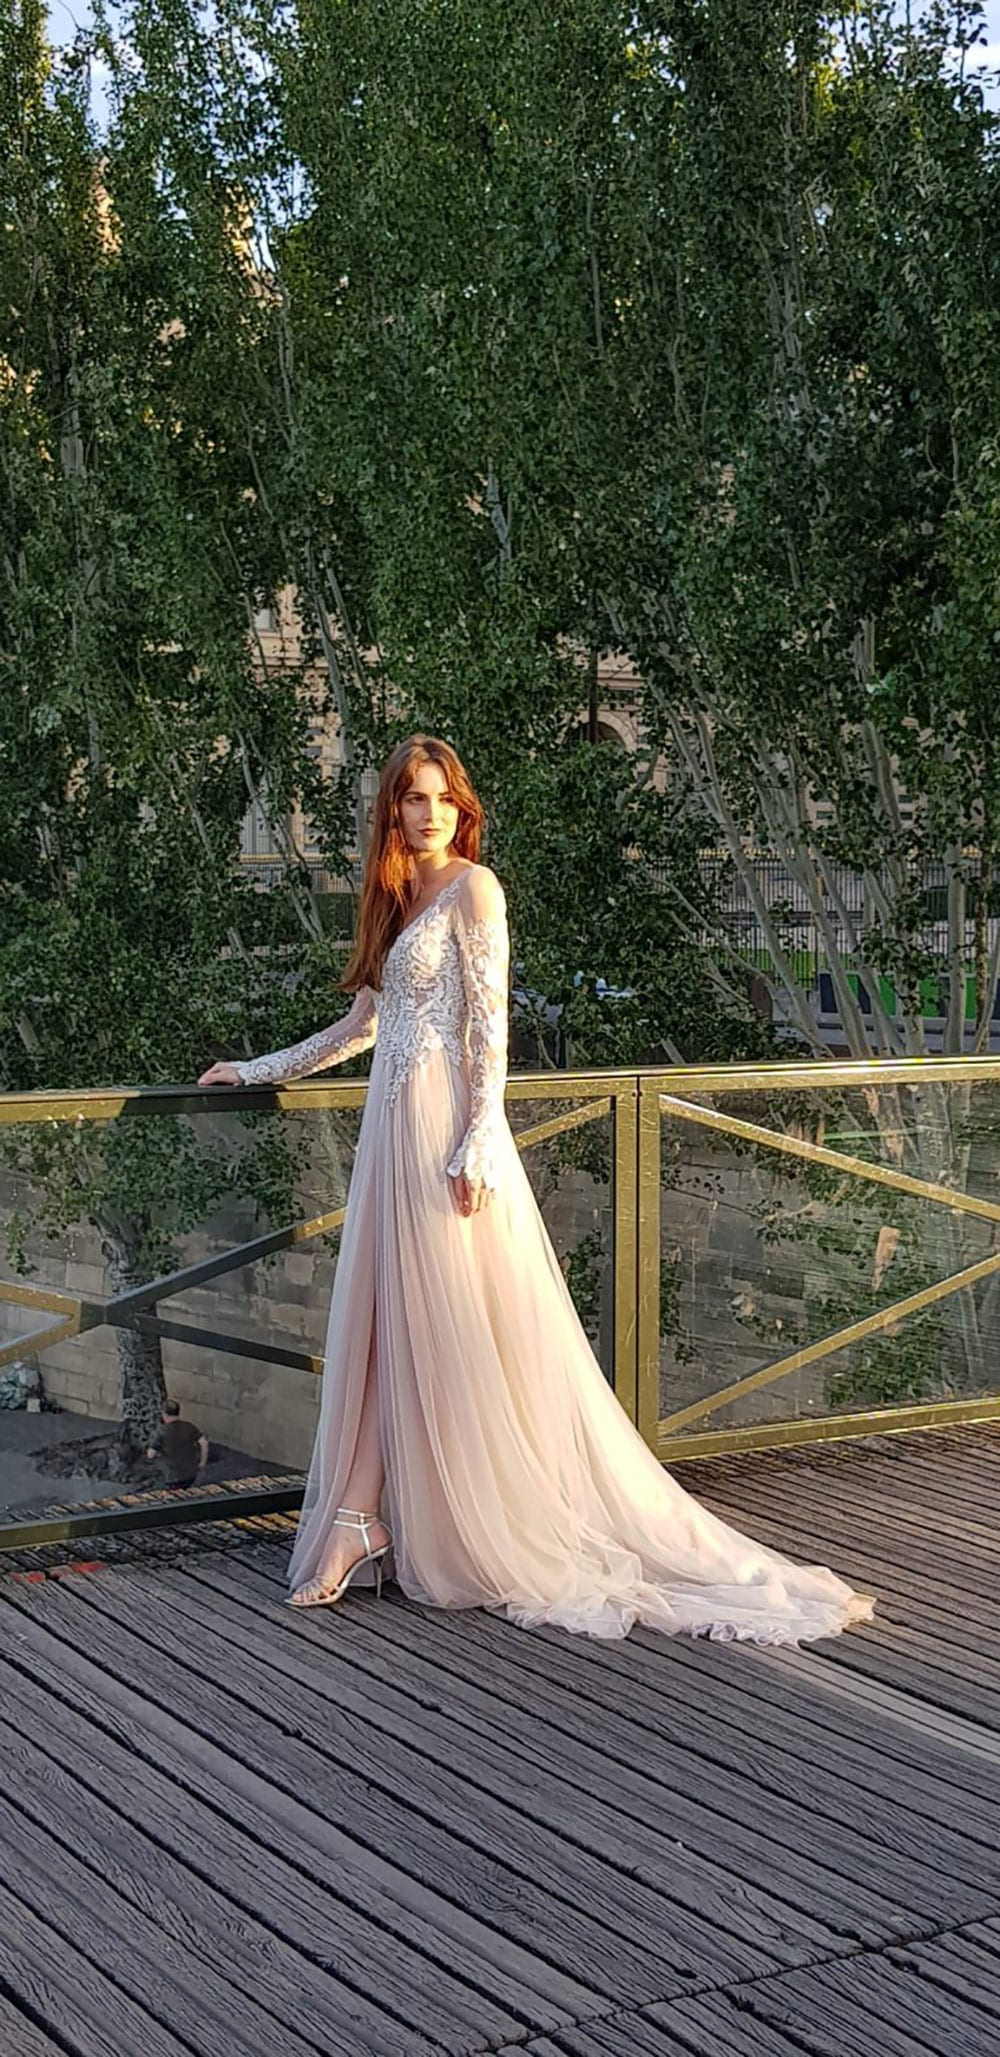 Model wearing Vinka Design Suri Wedding Dress, a Backless Silver Tulle and Lace Gown with Long Sleeves posed on Paris boardwalk